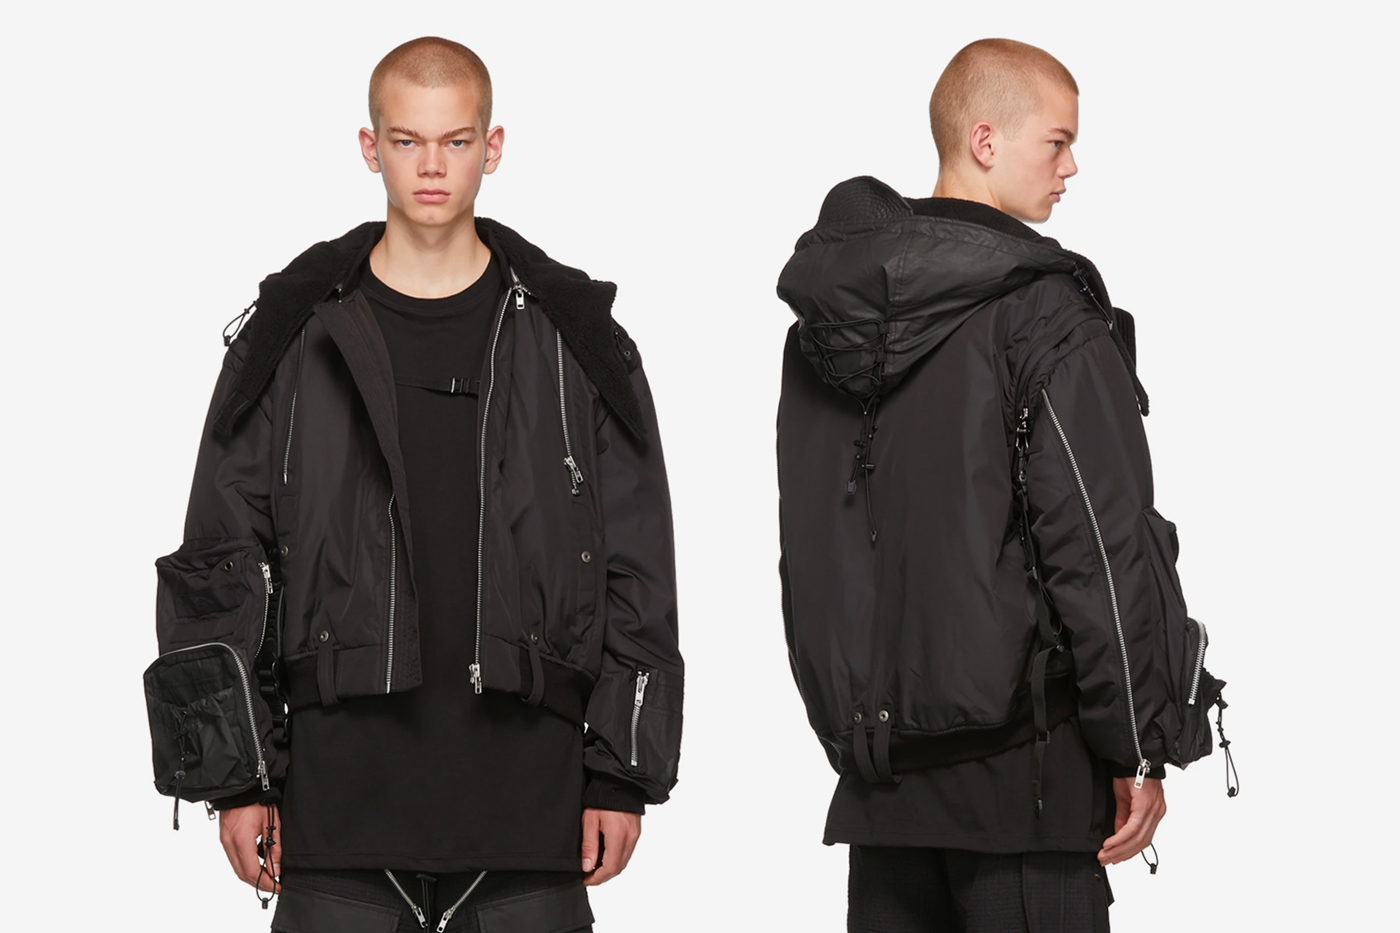 Blackmerle SSENSE Exclusive Black Hooded Bomber Jacket